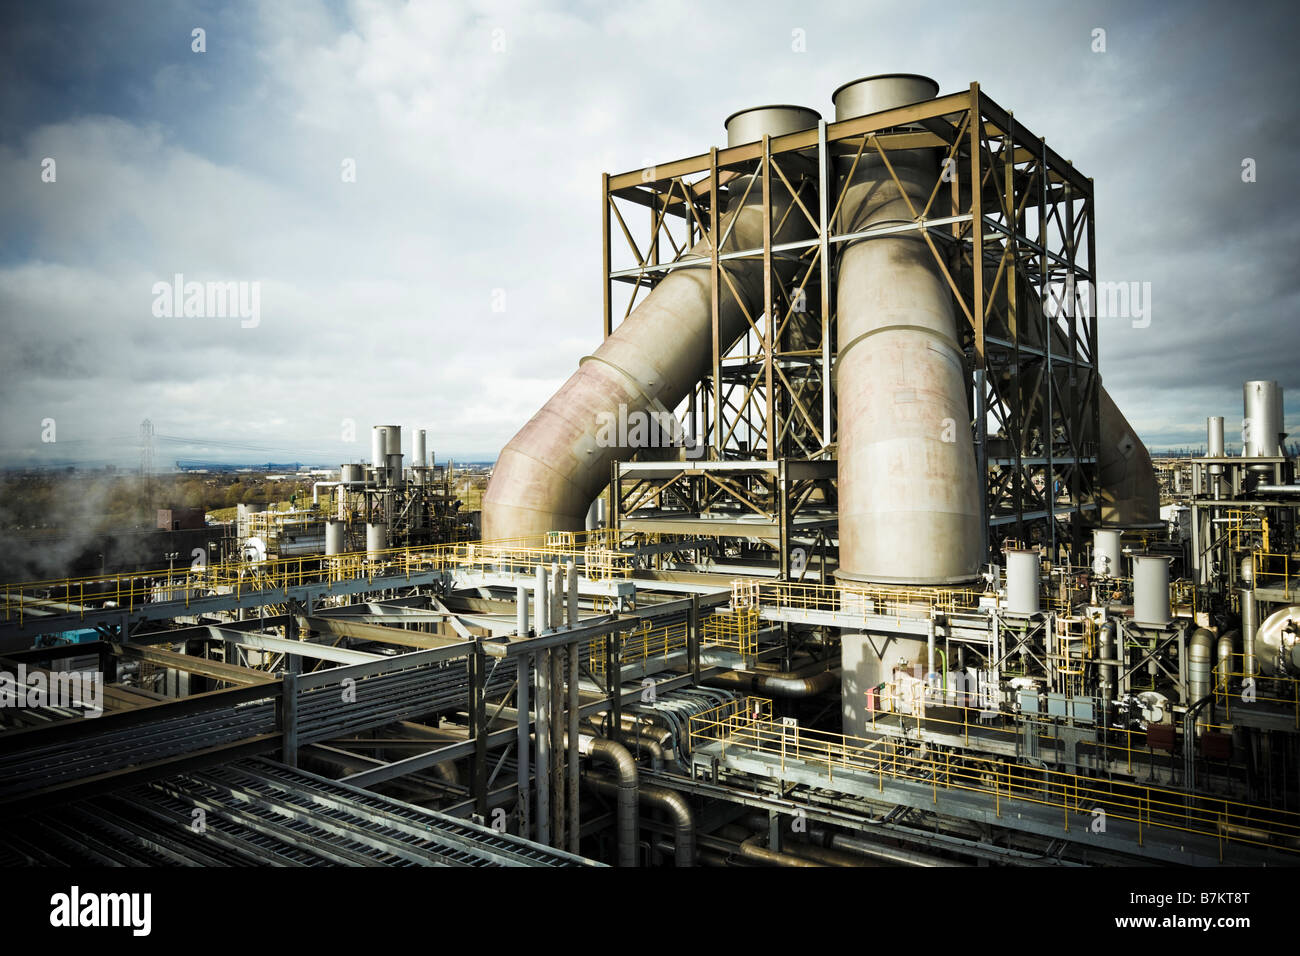 Power Station, UK - View over the chimneys and flues at a modern gas-fired power plant, GDF power station, Teesside, Stock Photo